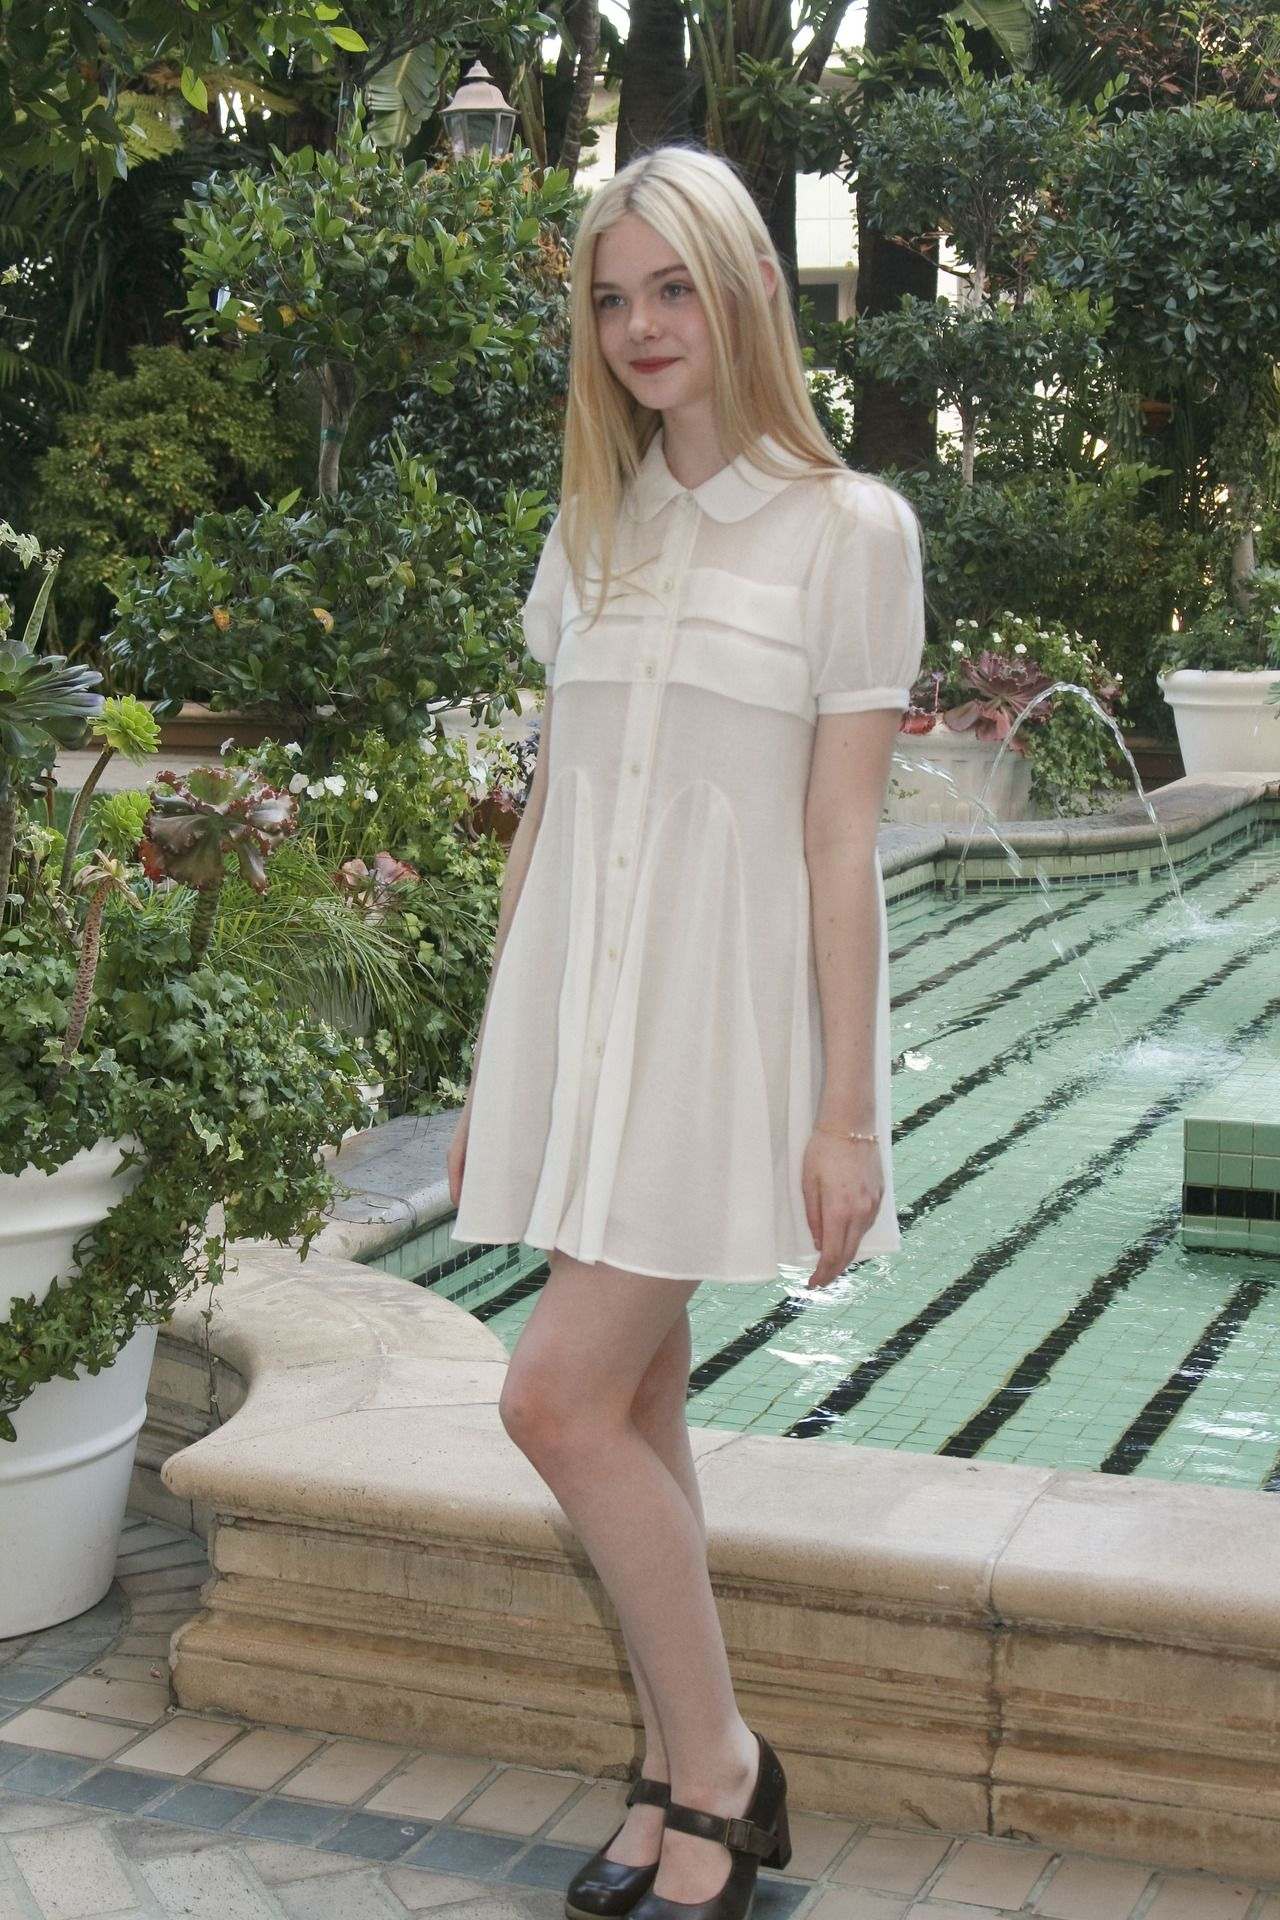 Elle fanning at a press conference for somewhere august th